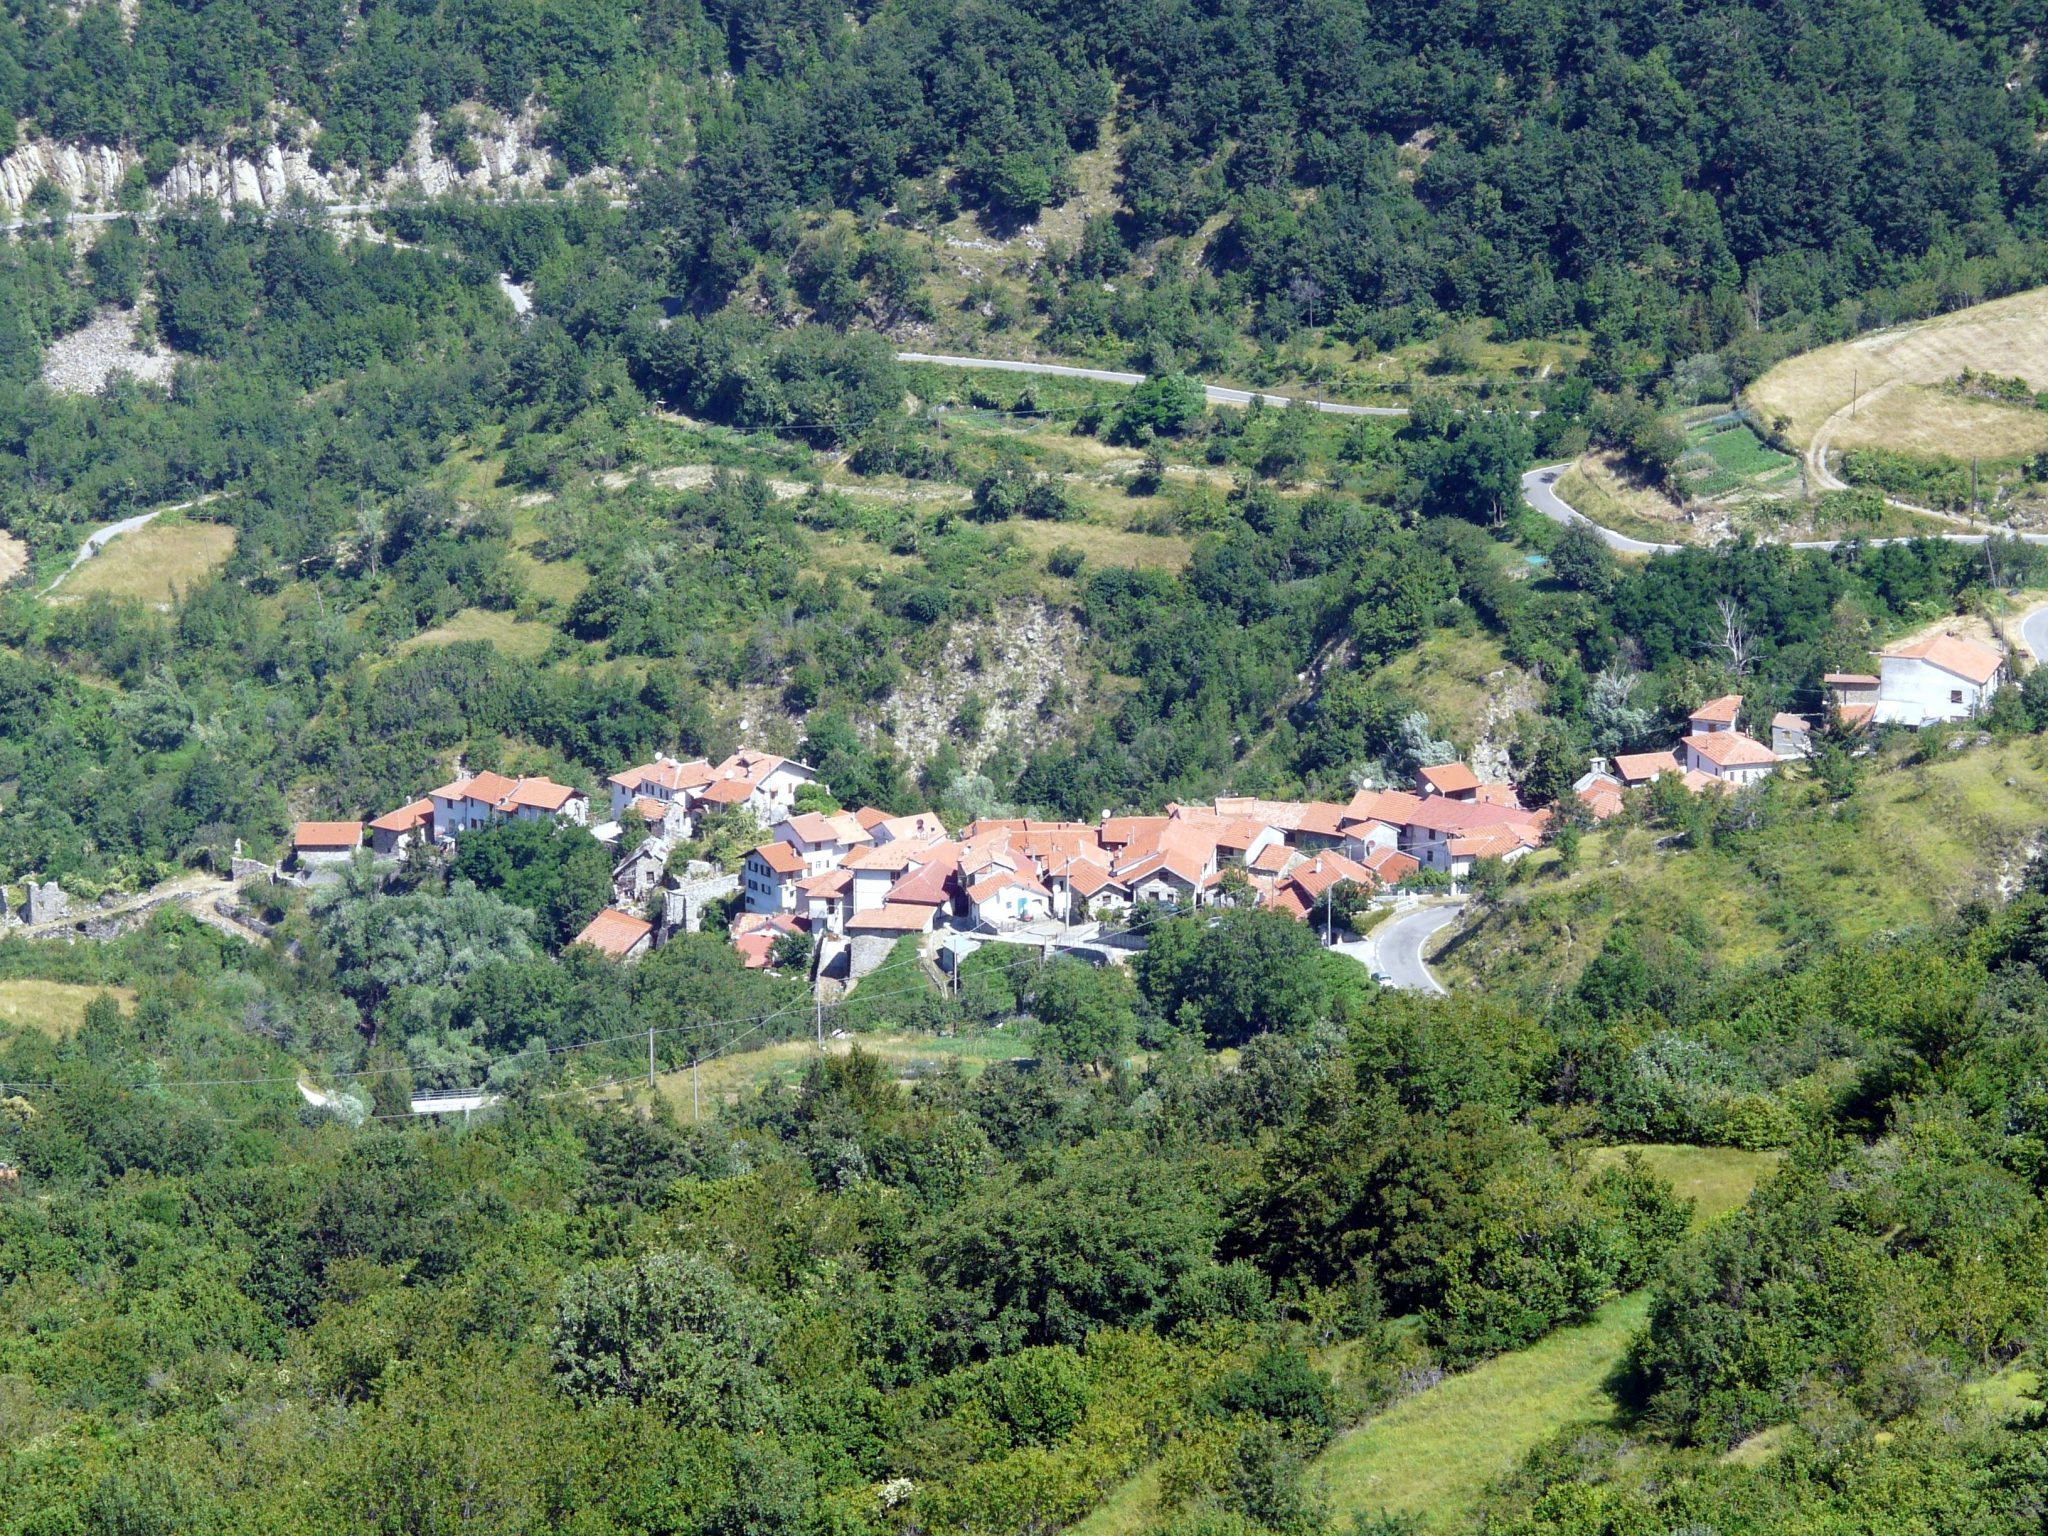 Connio_(Carrega_Ligure)-panorama_dal_castello